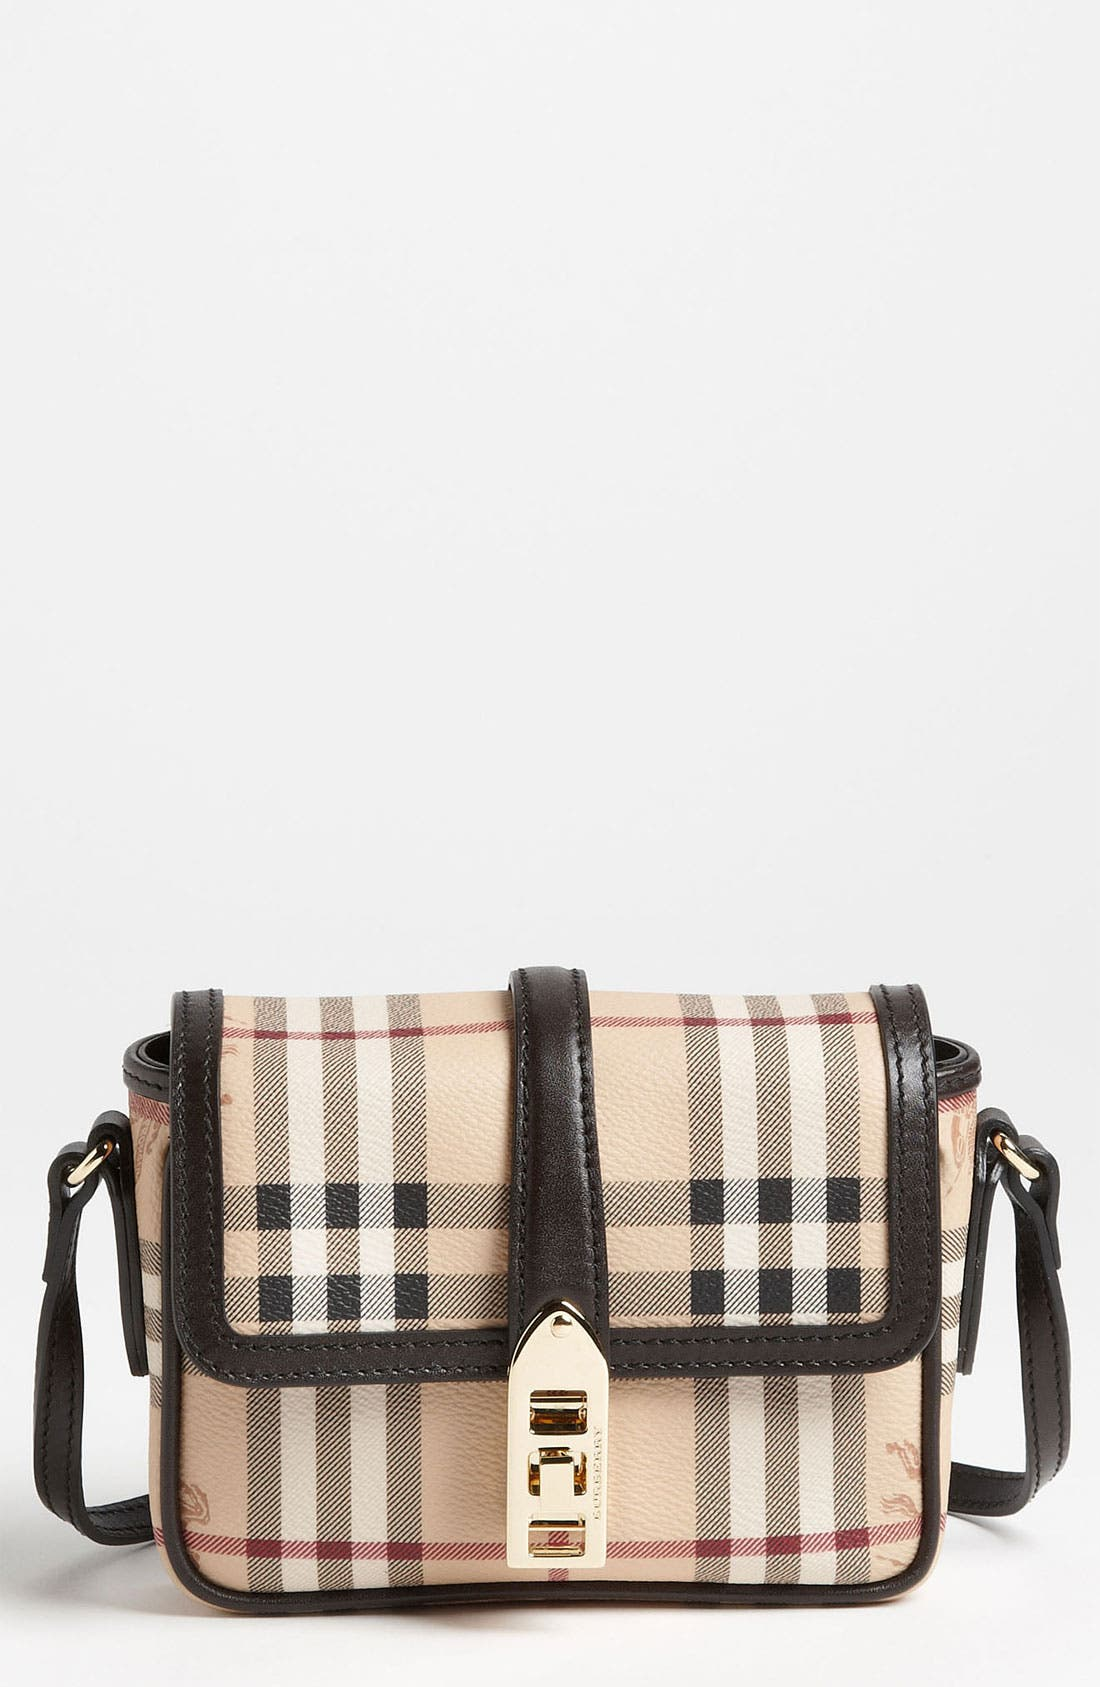 Alternate Image 1 Selected - Burberry 'Haymarket Check' Crossbody Bag